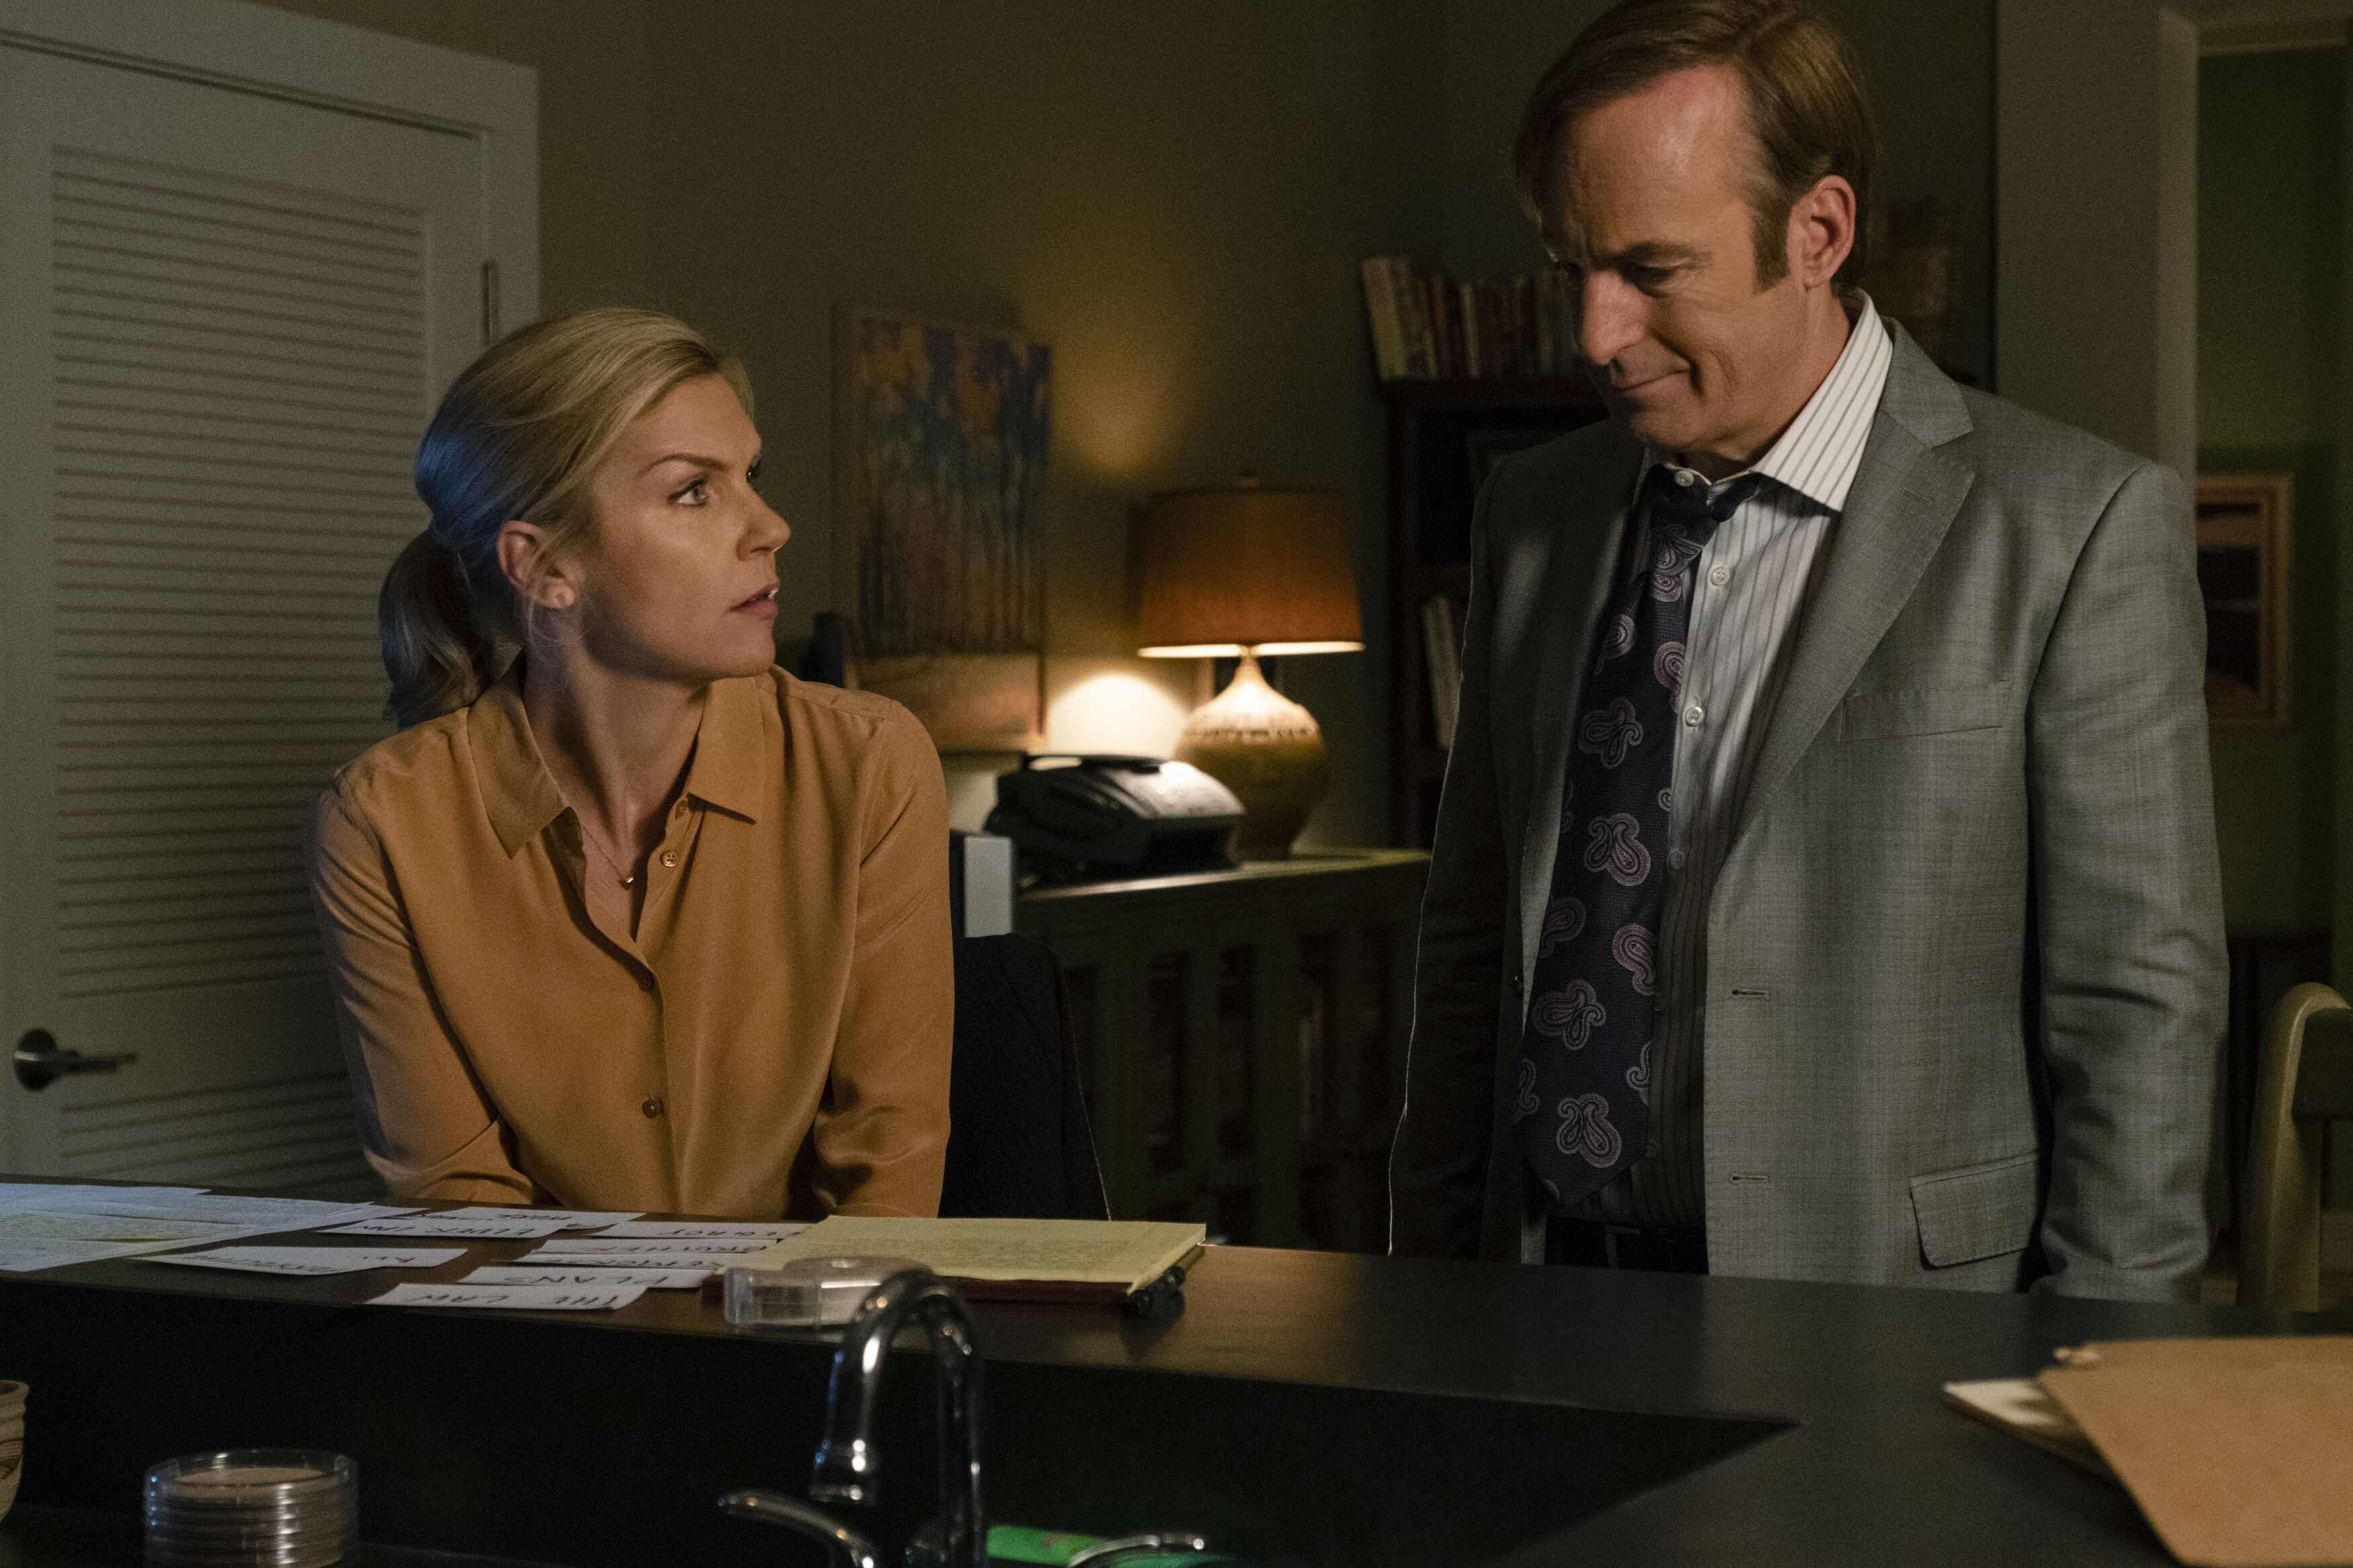 When does Better Call Saul Season 5 premiere on AMC?